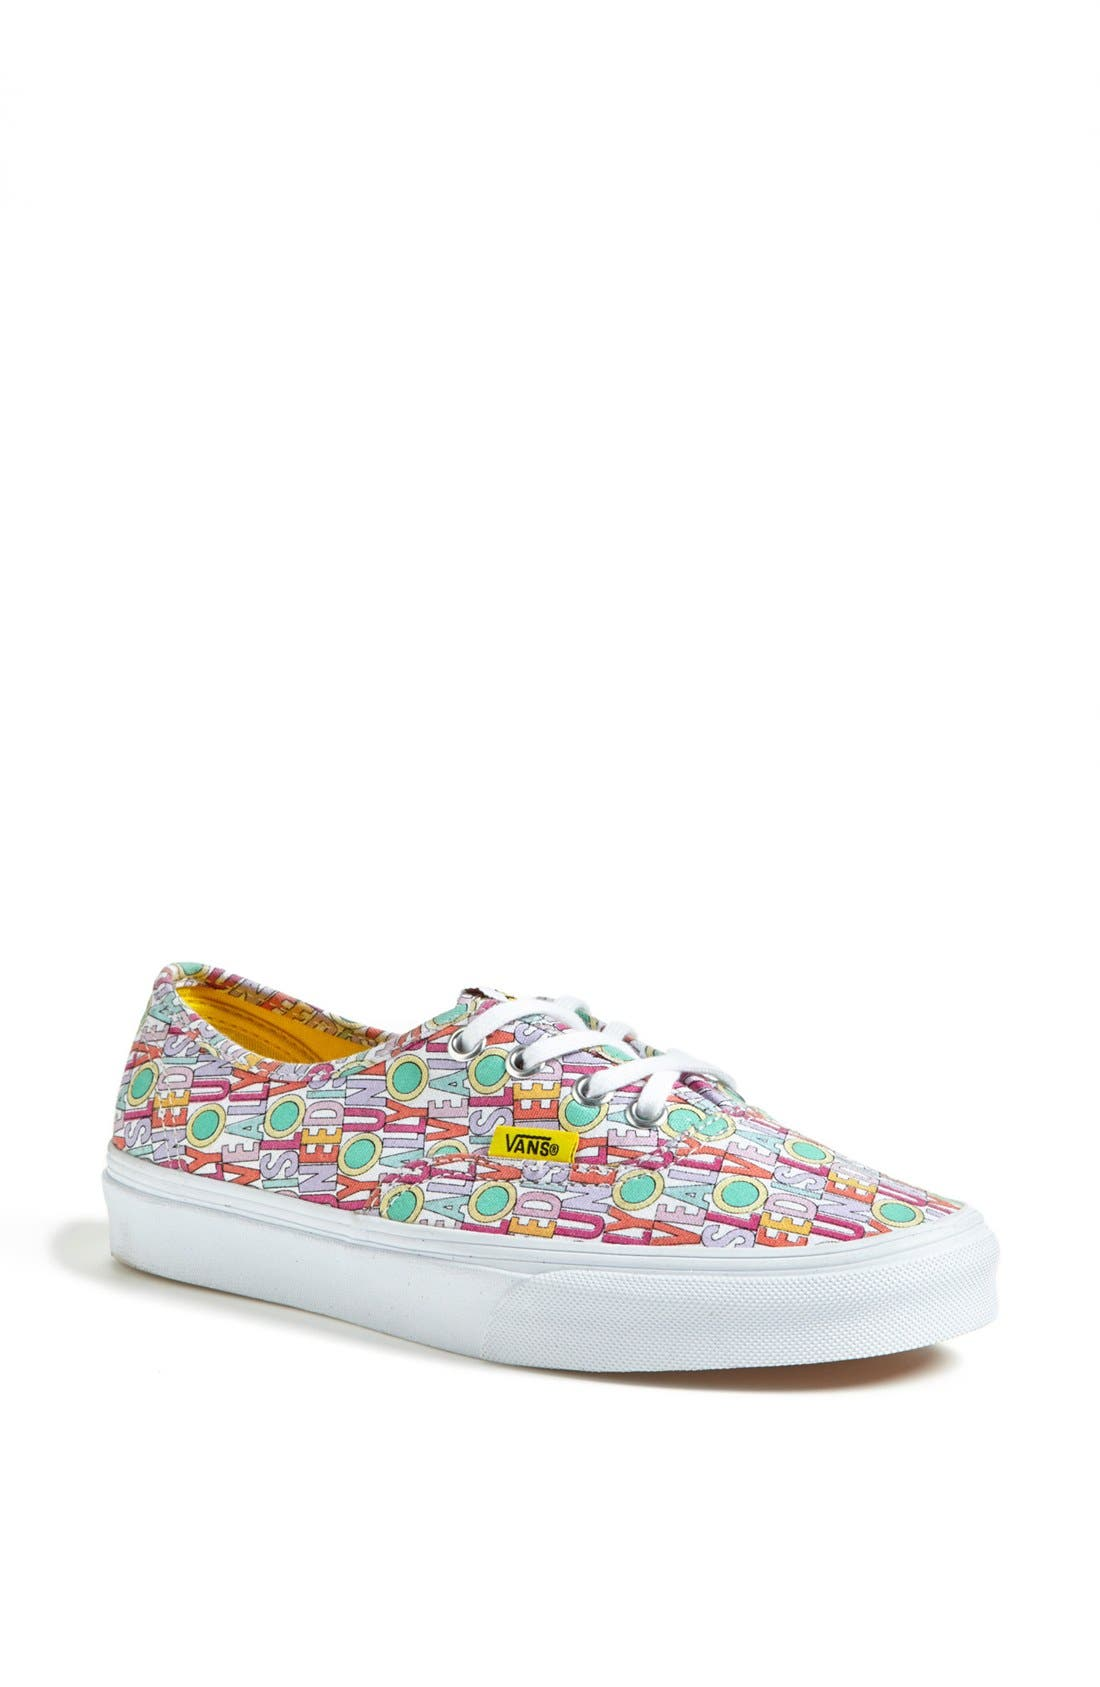 Main Image - Vans 'Authentic - All You Need Is Love' Sneaker